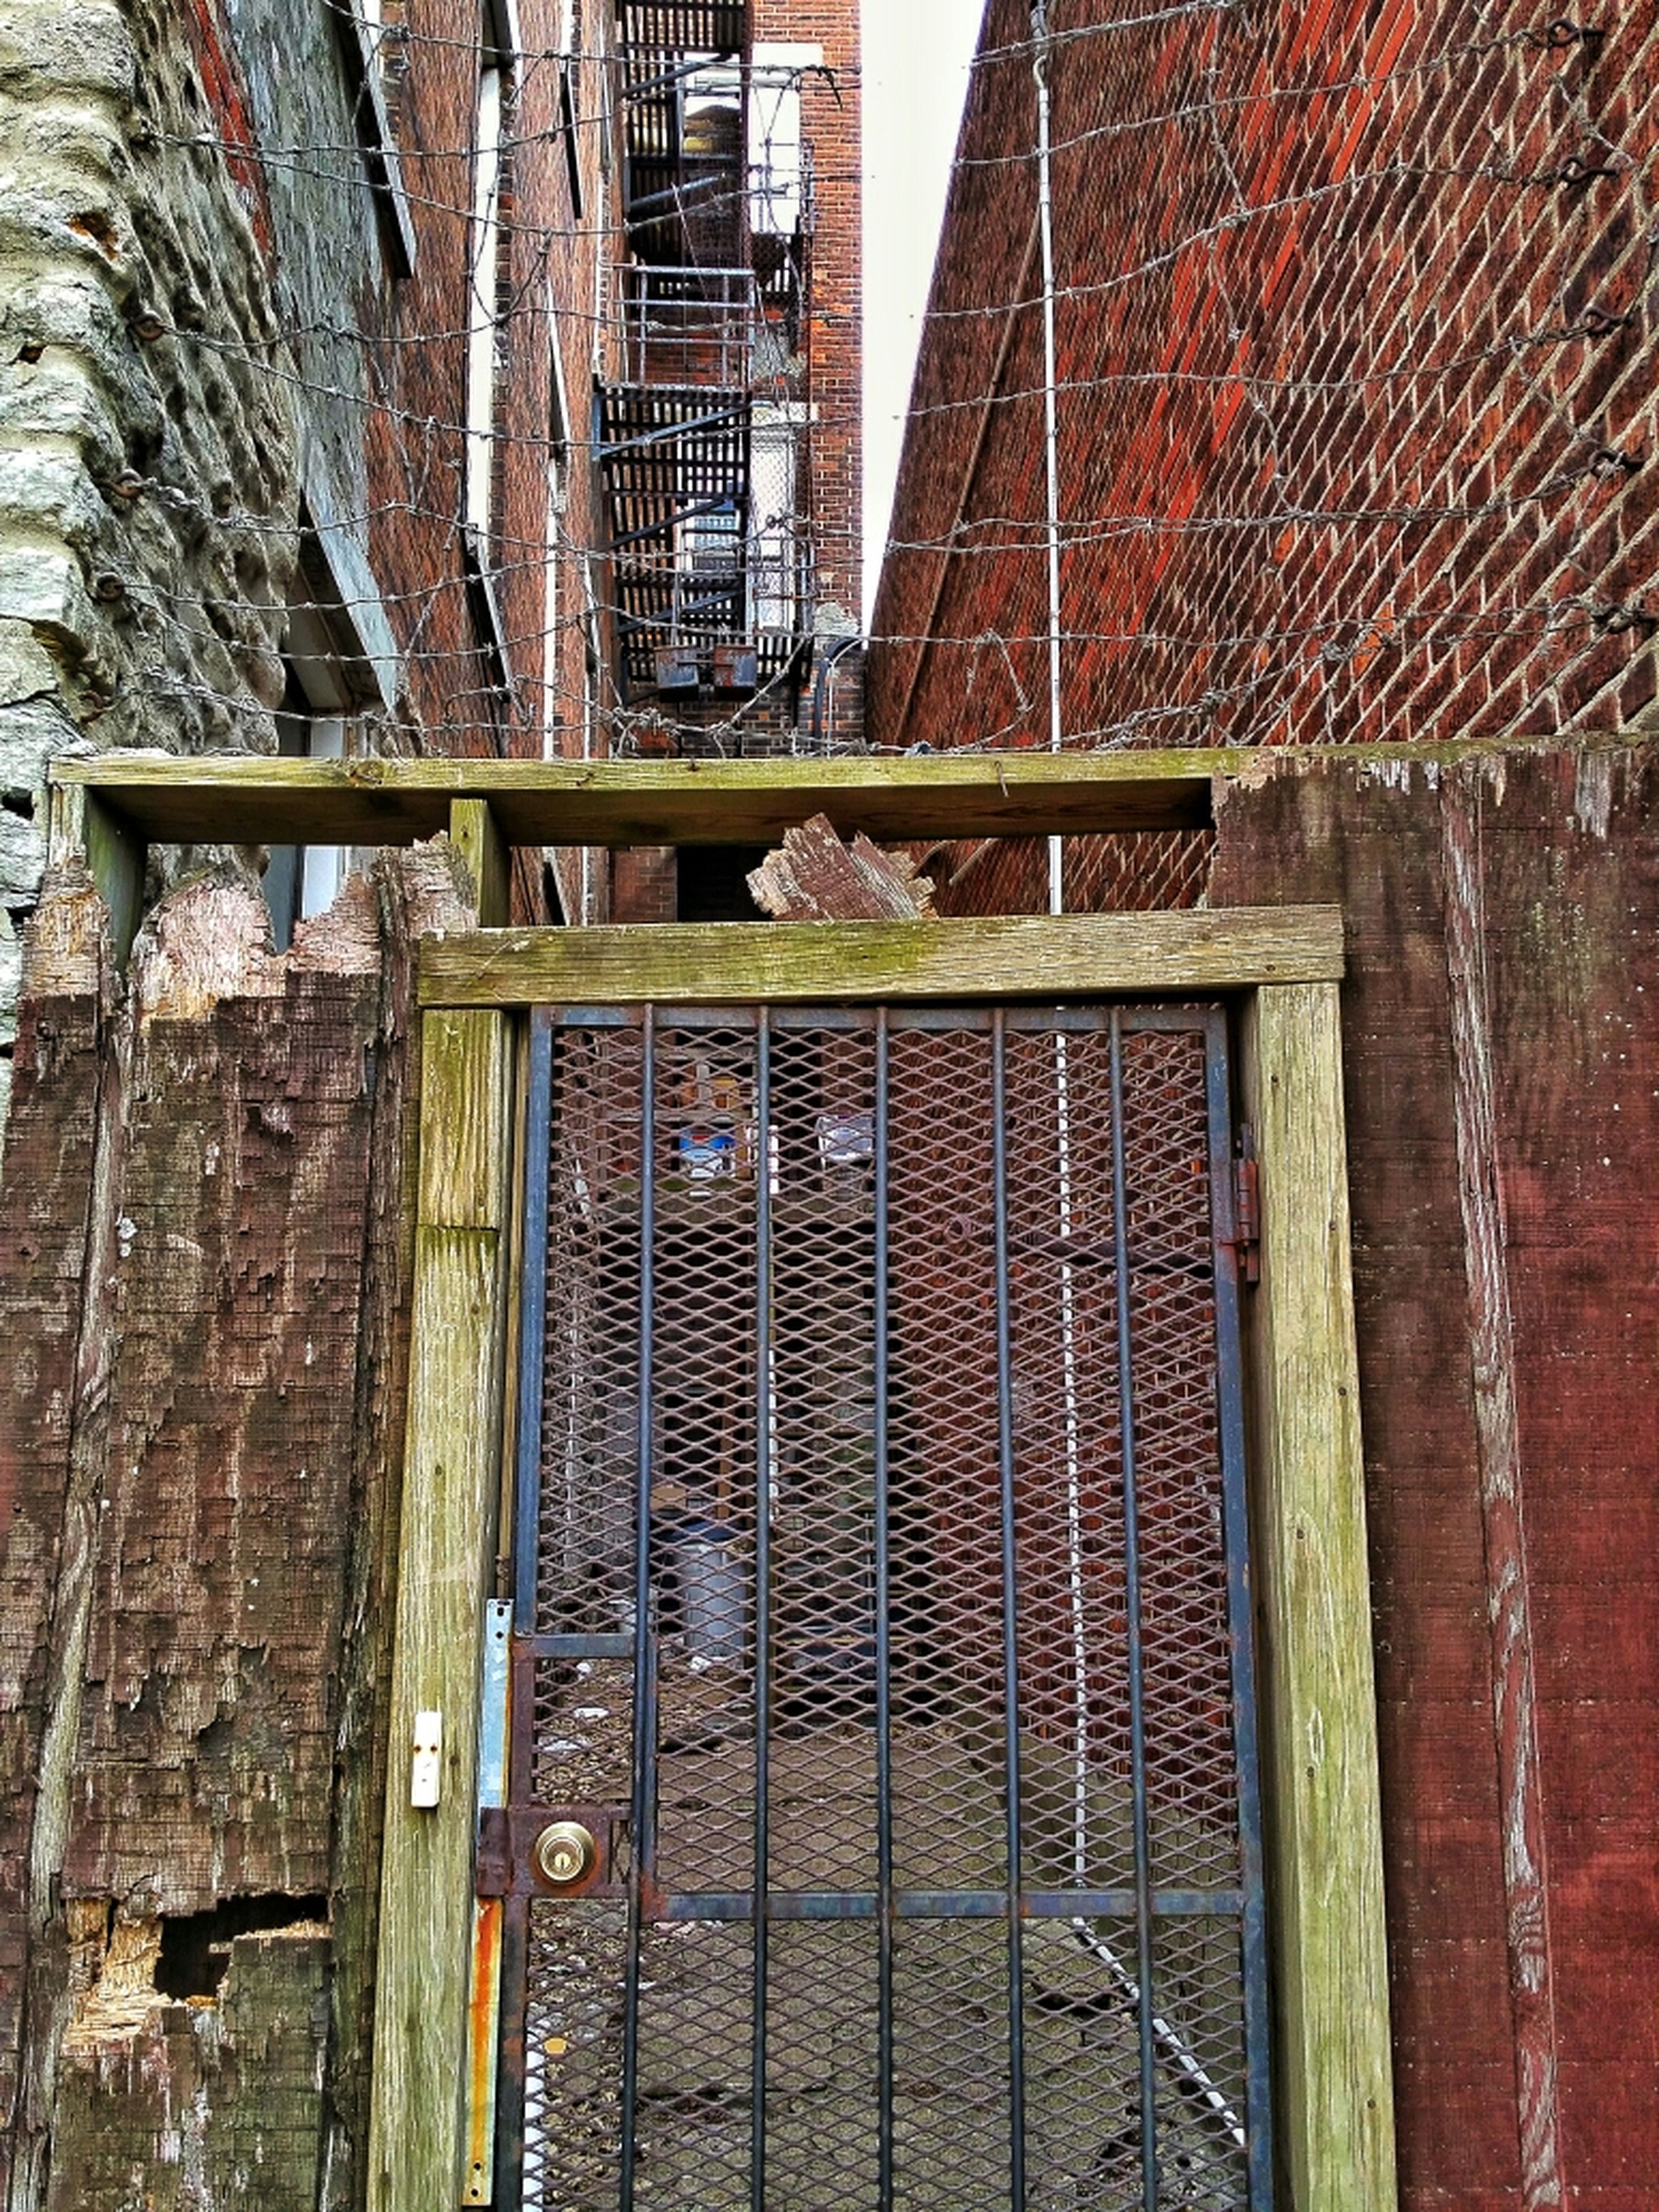 architecture, building exterior, built structure, brick wall, window, building, residential structure, house, door, wood - material, residential building, wall - building feature, old, weathered, city, closed, outdoors, day, safety, no people